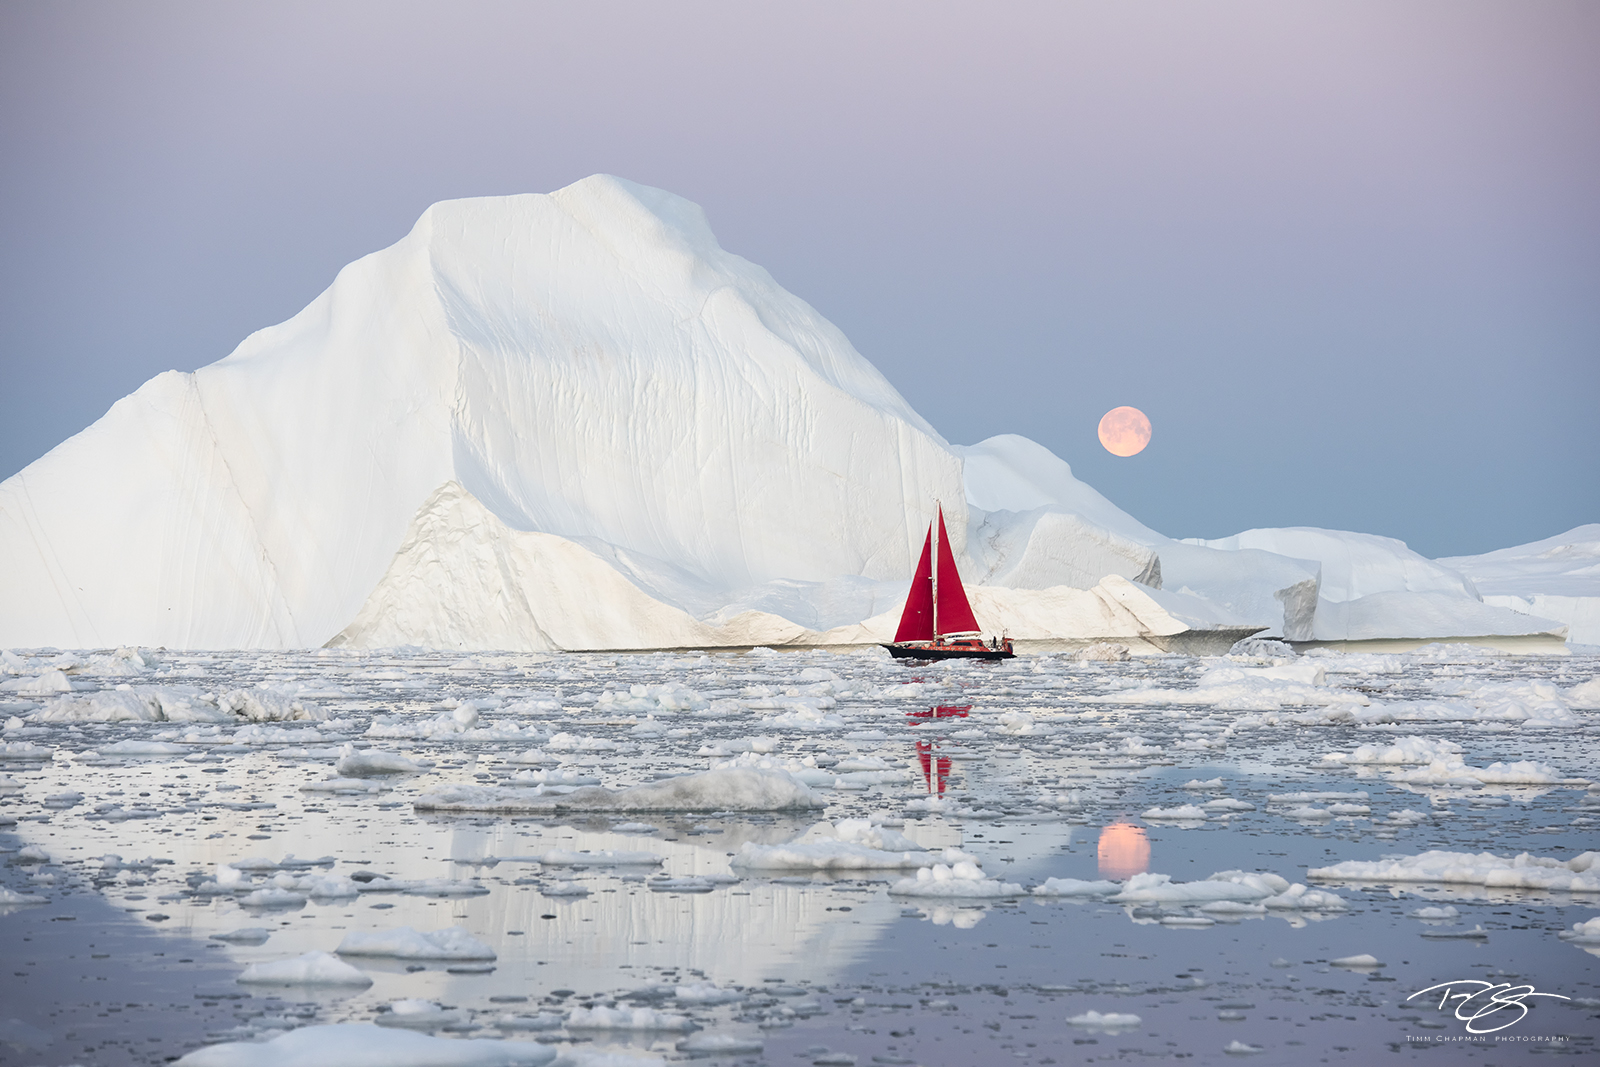 ice, iceberg, arctic, moondance, full moon, reflection, disko bay, sailboat, yacht, red sails, scarlet sails, photo